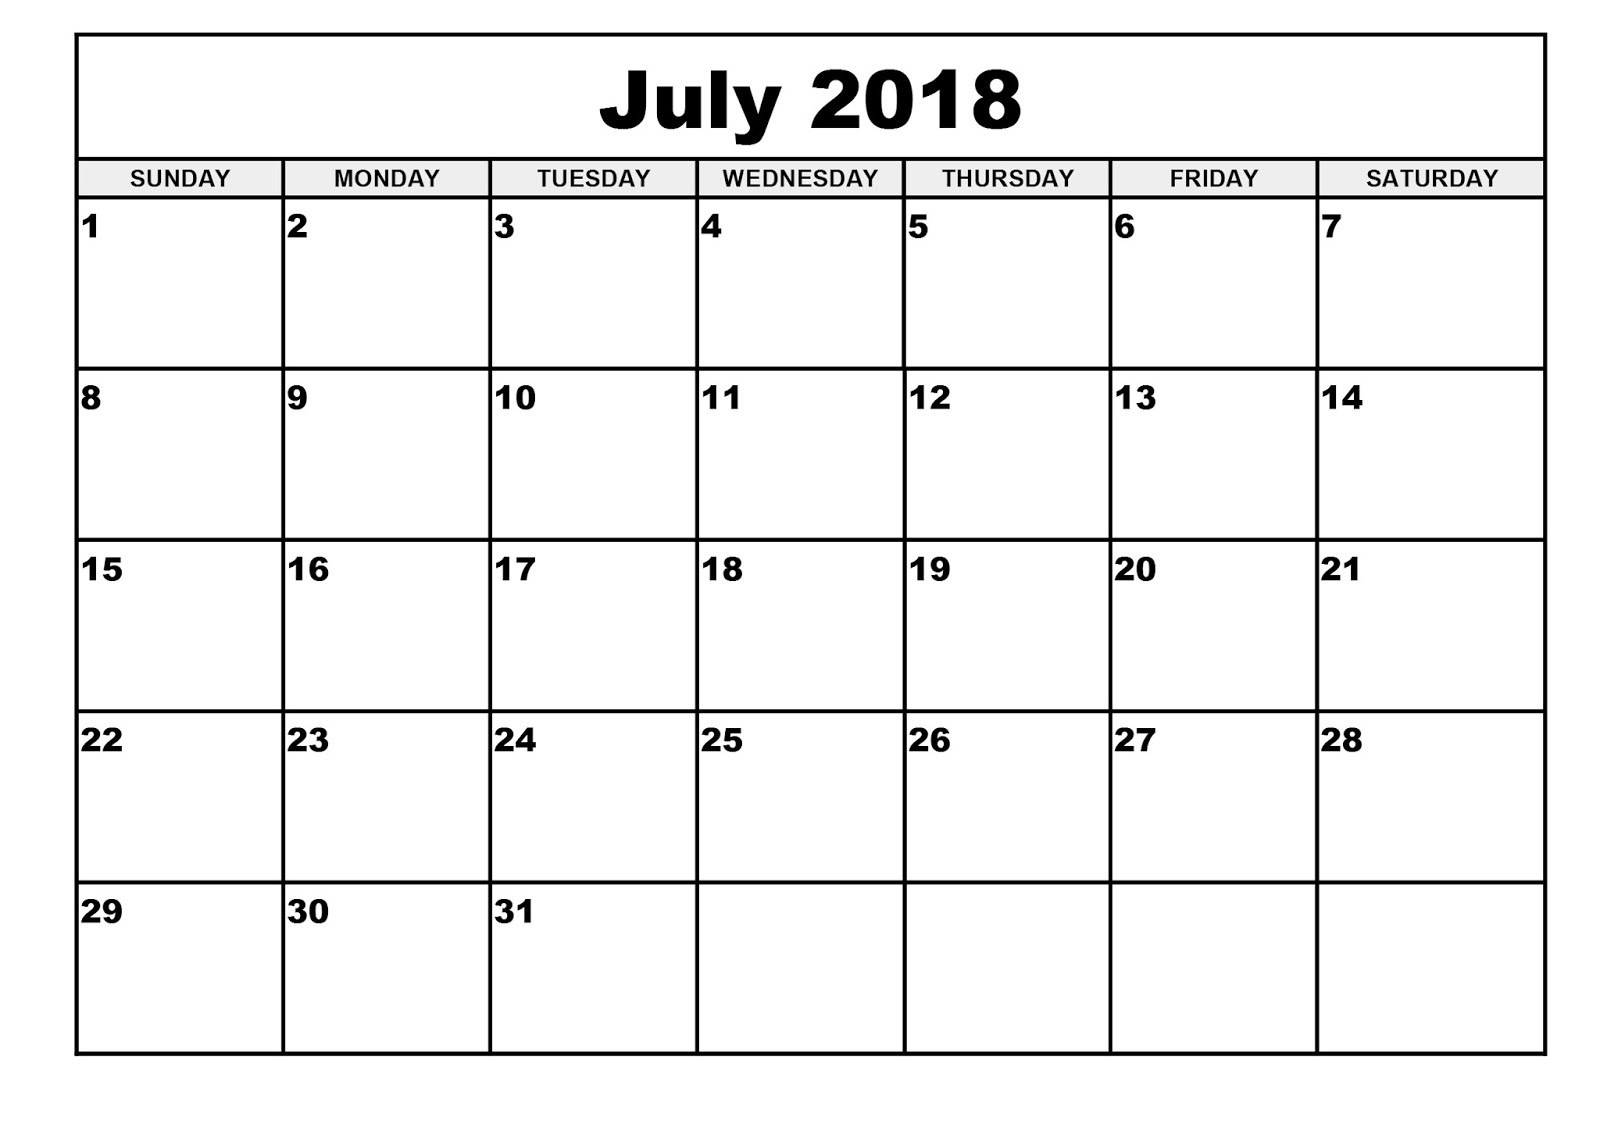 Free July 2018 Calendar Printable Blank Templates - Word Pdf_Blank Calendar Can Type In